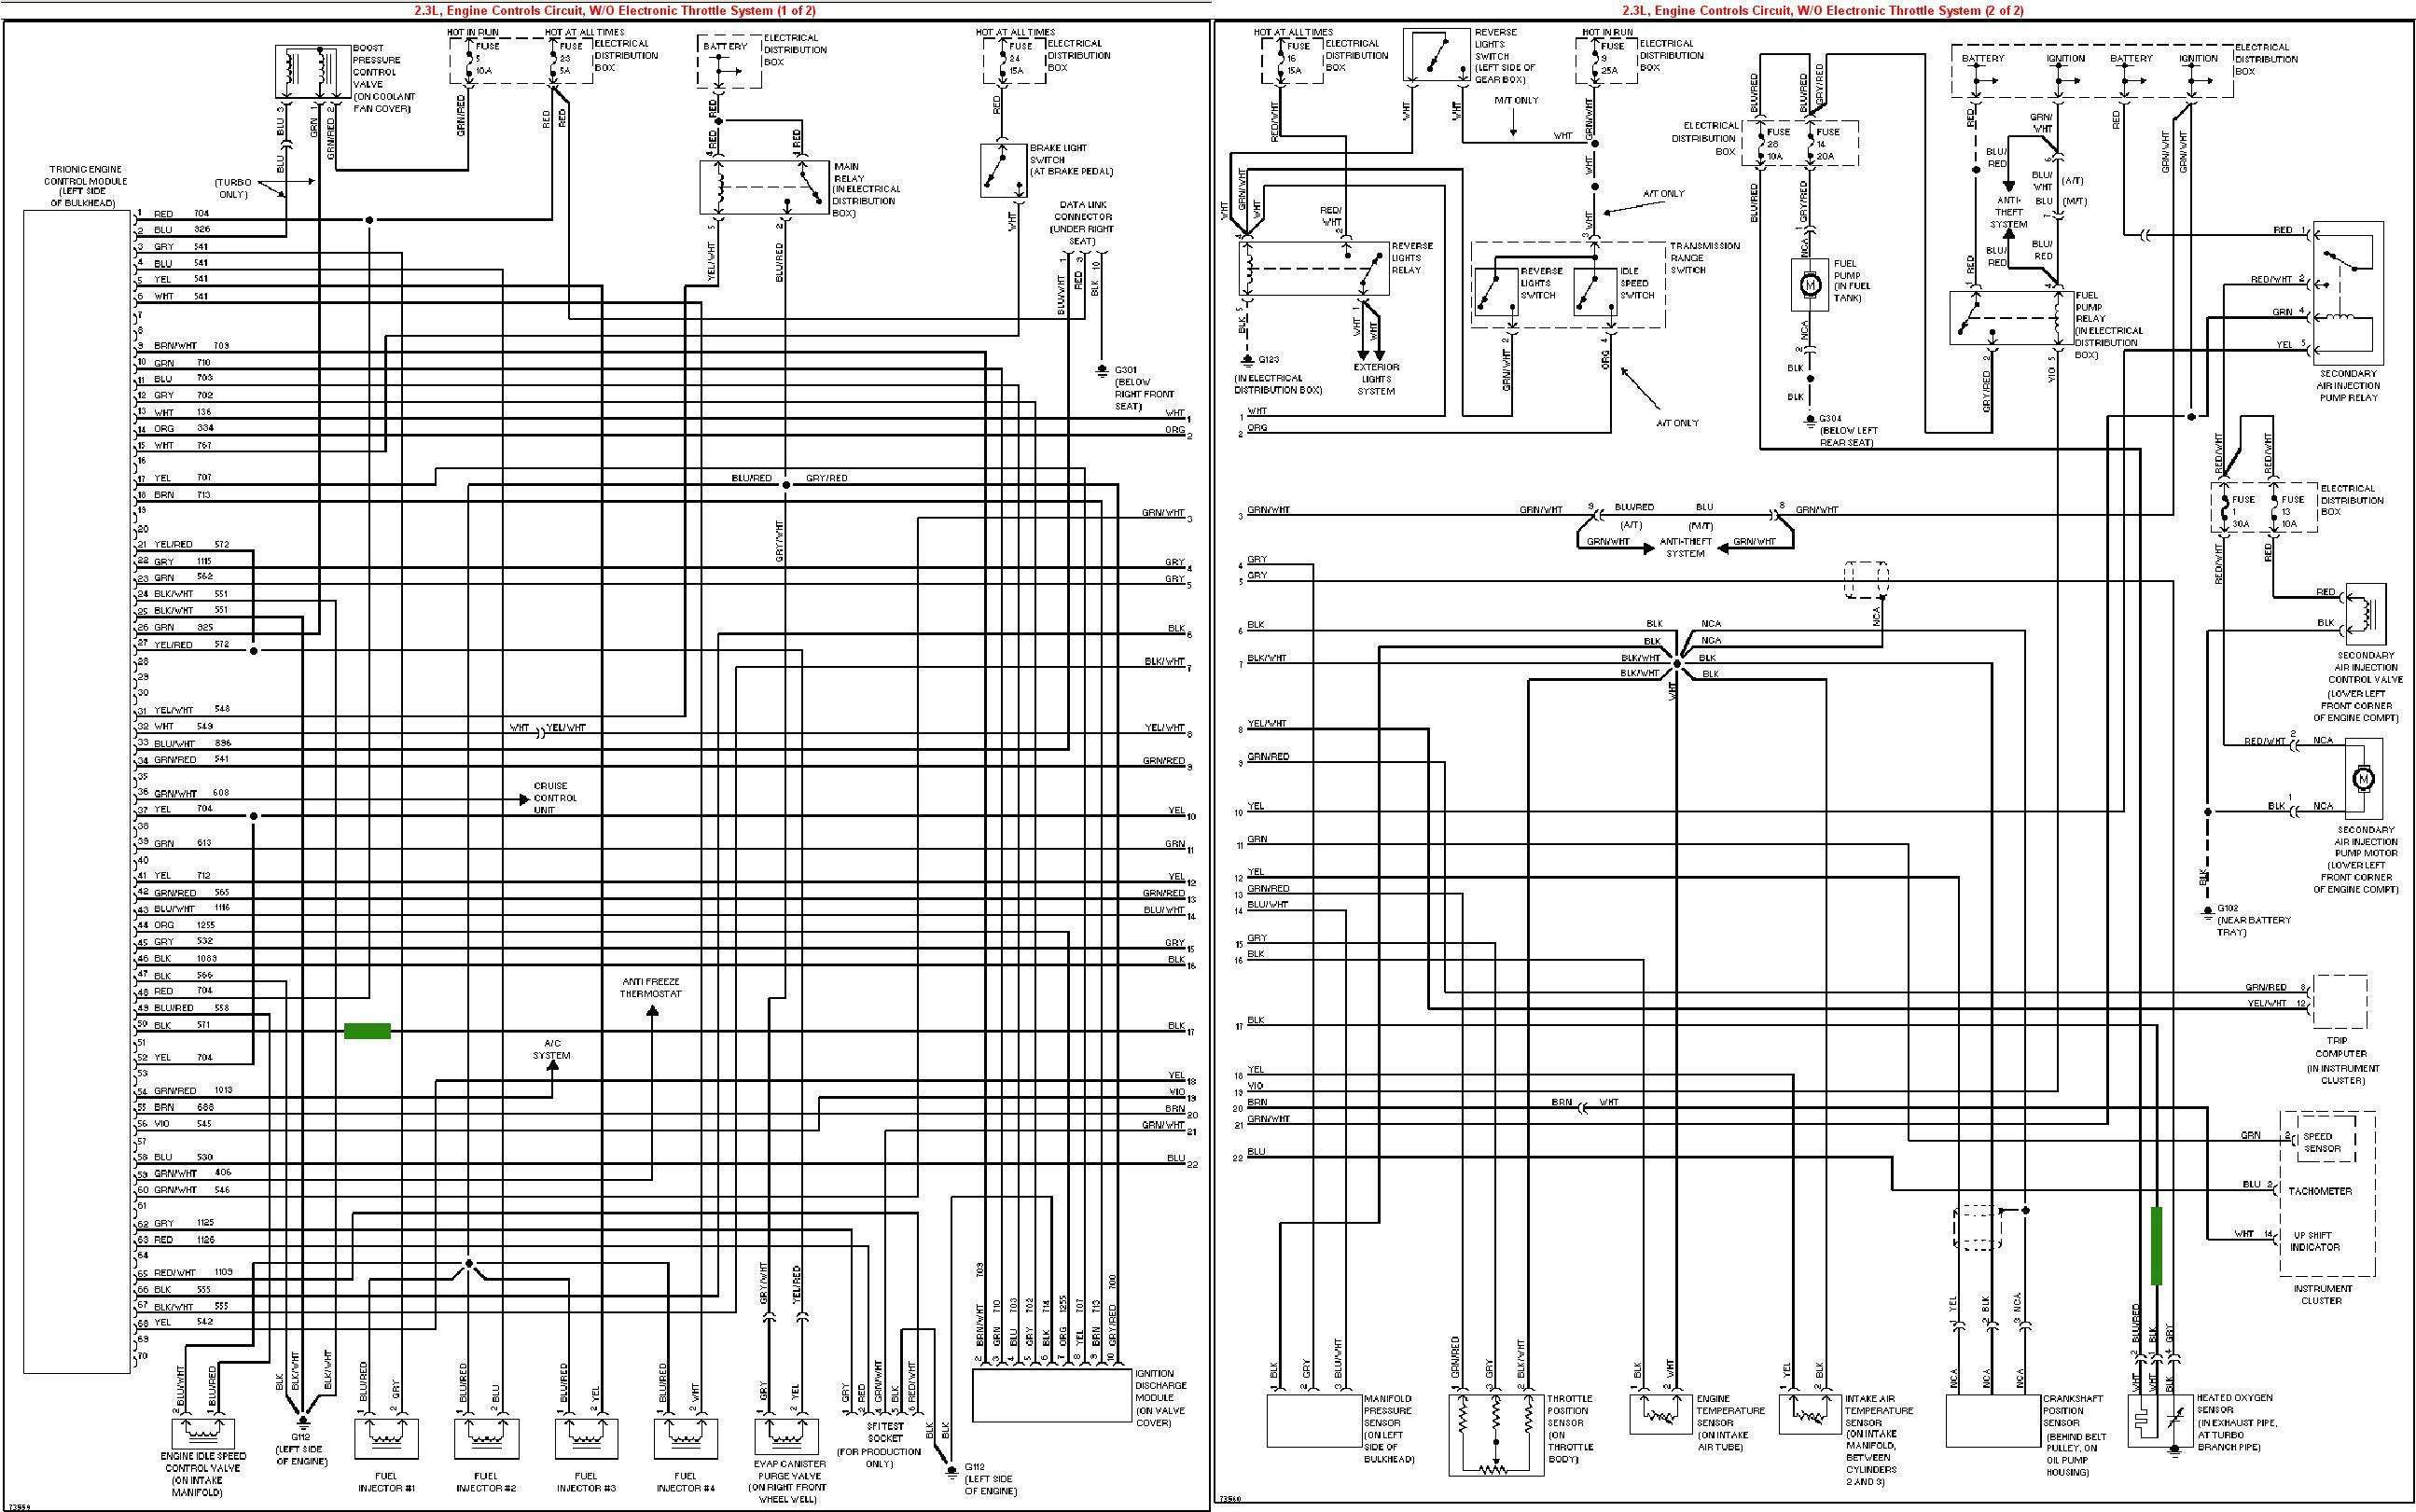 Wiring Diagram Electrical Wiring Diagram Electrical Diagram Electrical Wiring Diagram Electrical Diagram